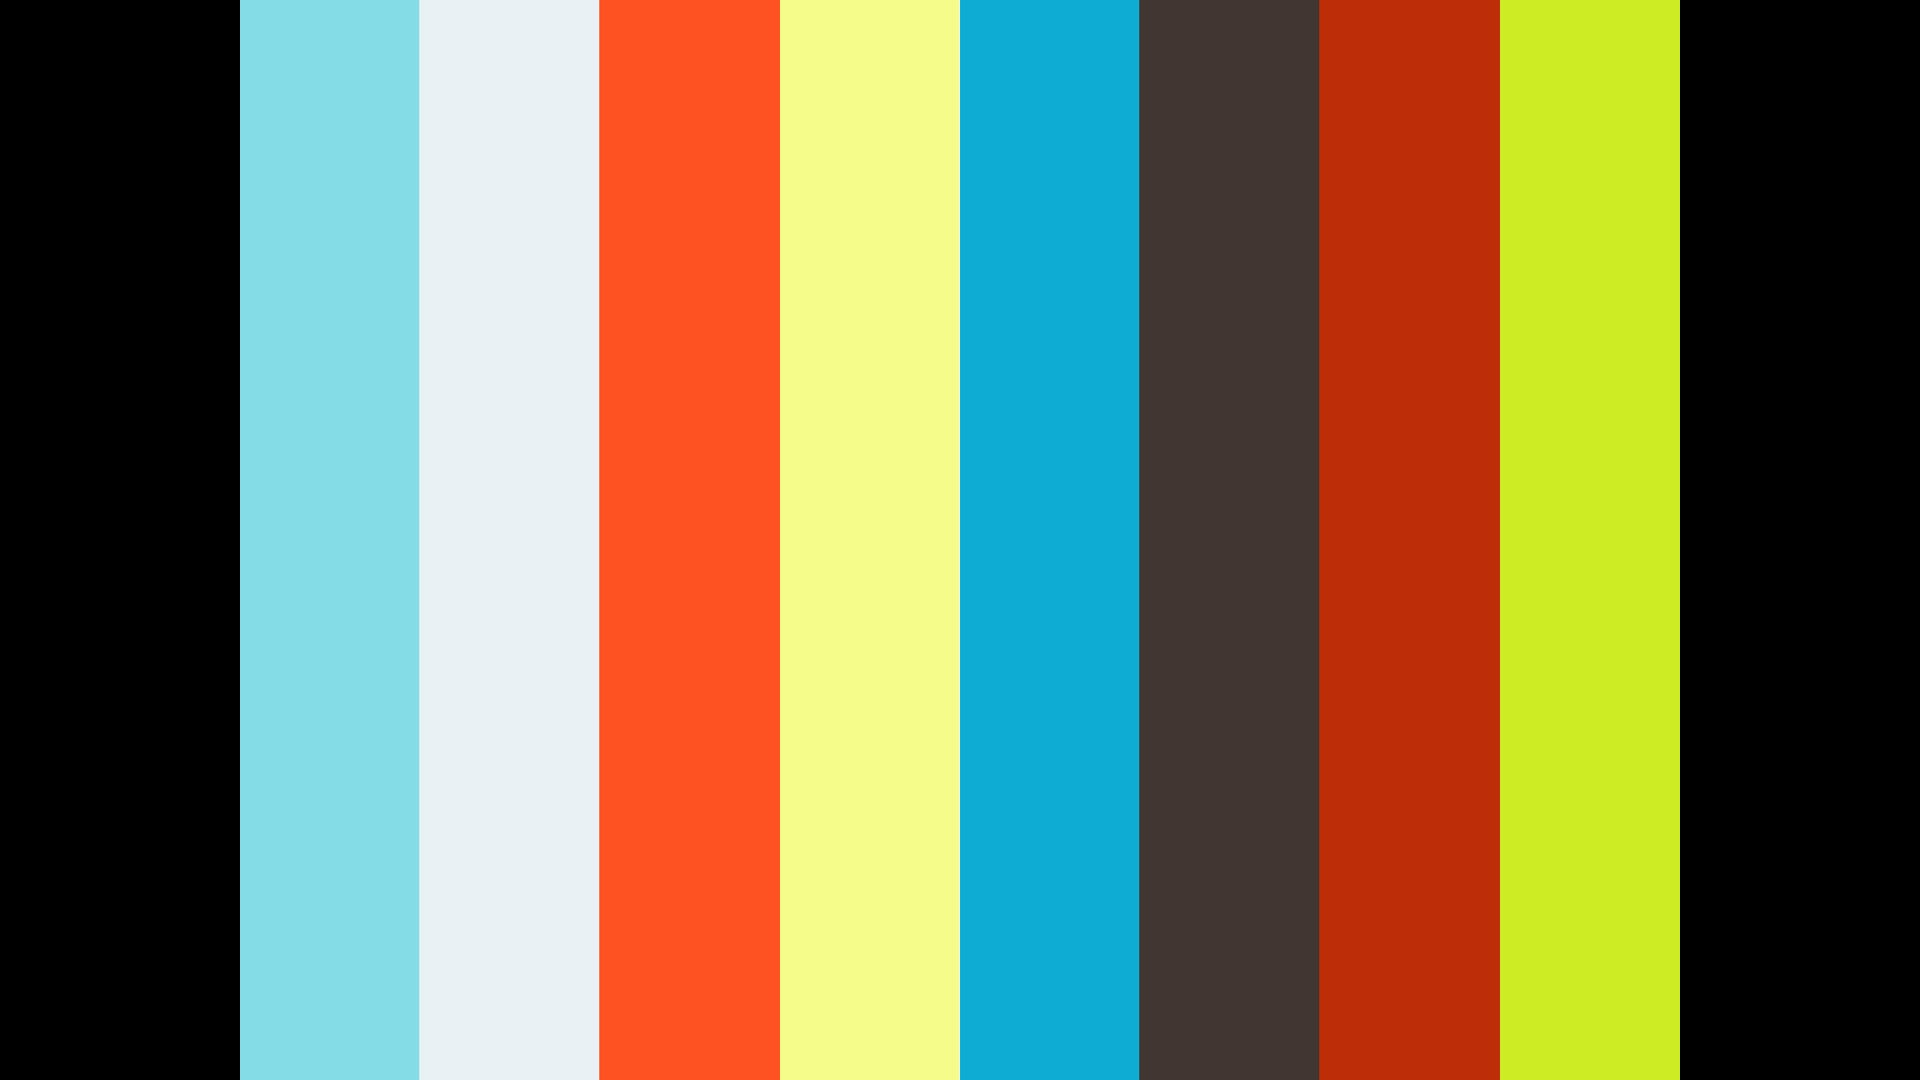 PANDAS/PANS and Other AE's: Biological Basis of Anti-Neuronal Targets and Cunningham Panel